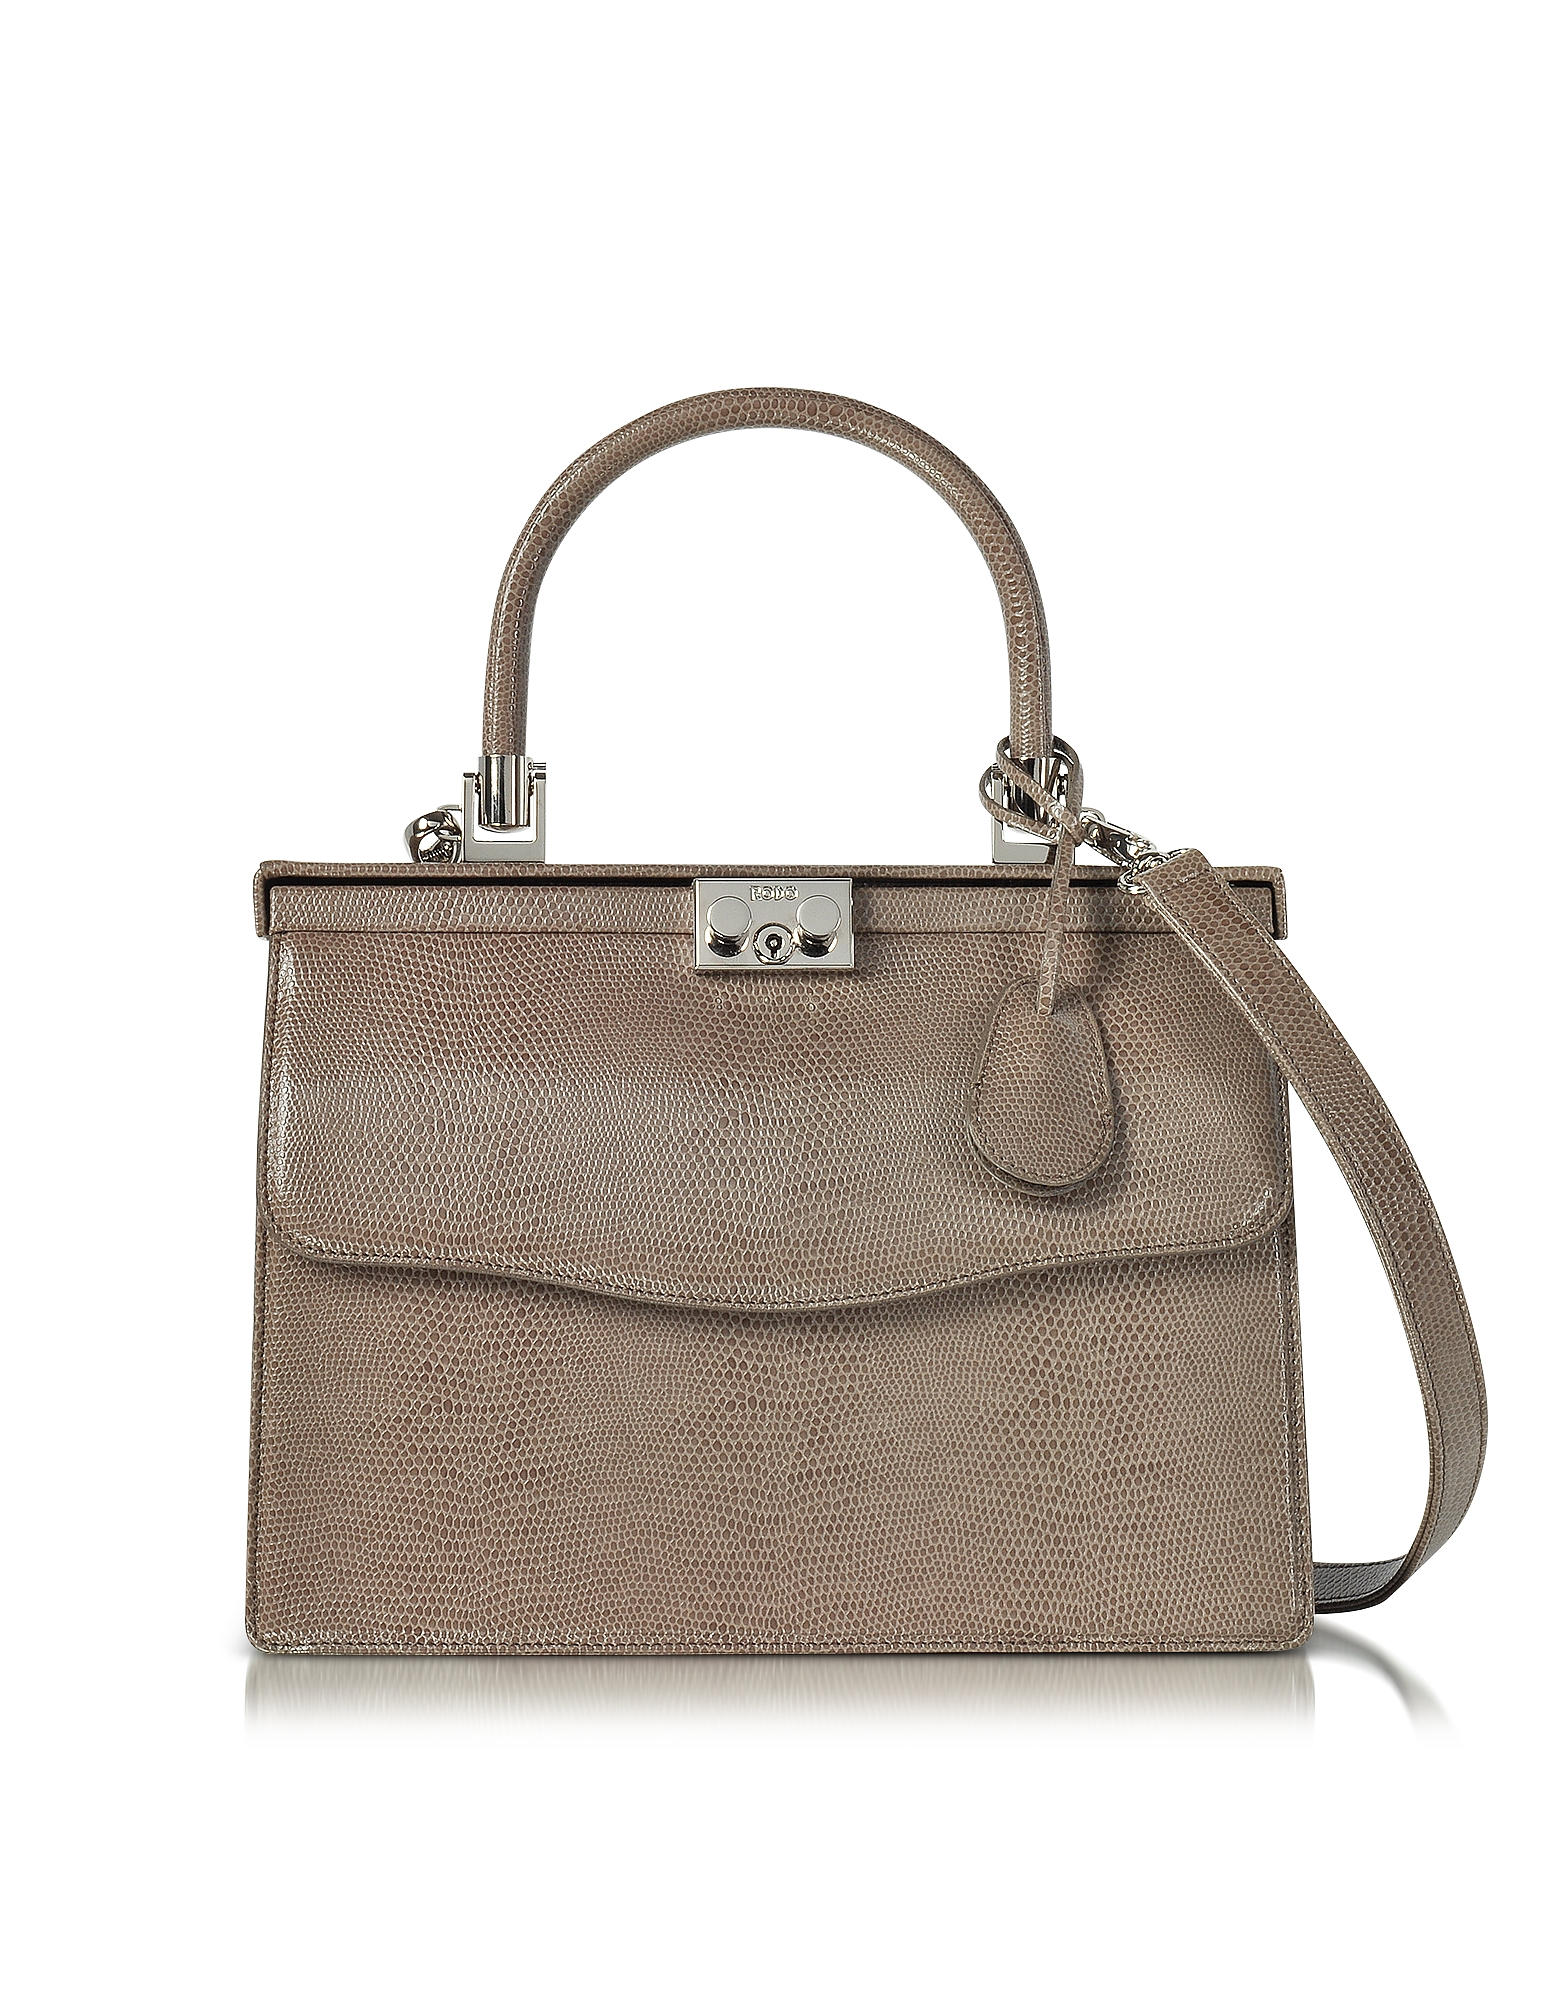 Rodo Handbags, Taupe Lizard Embossed Leather Top Handle Paris Bag